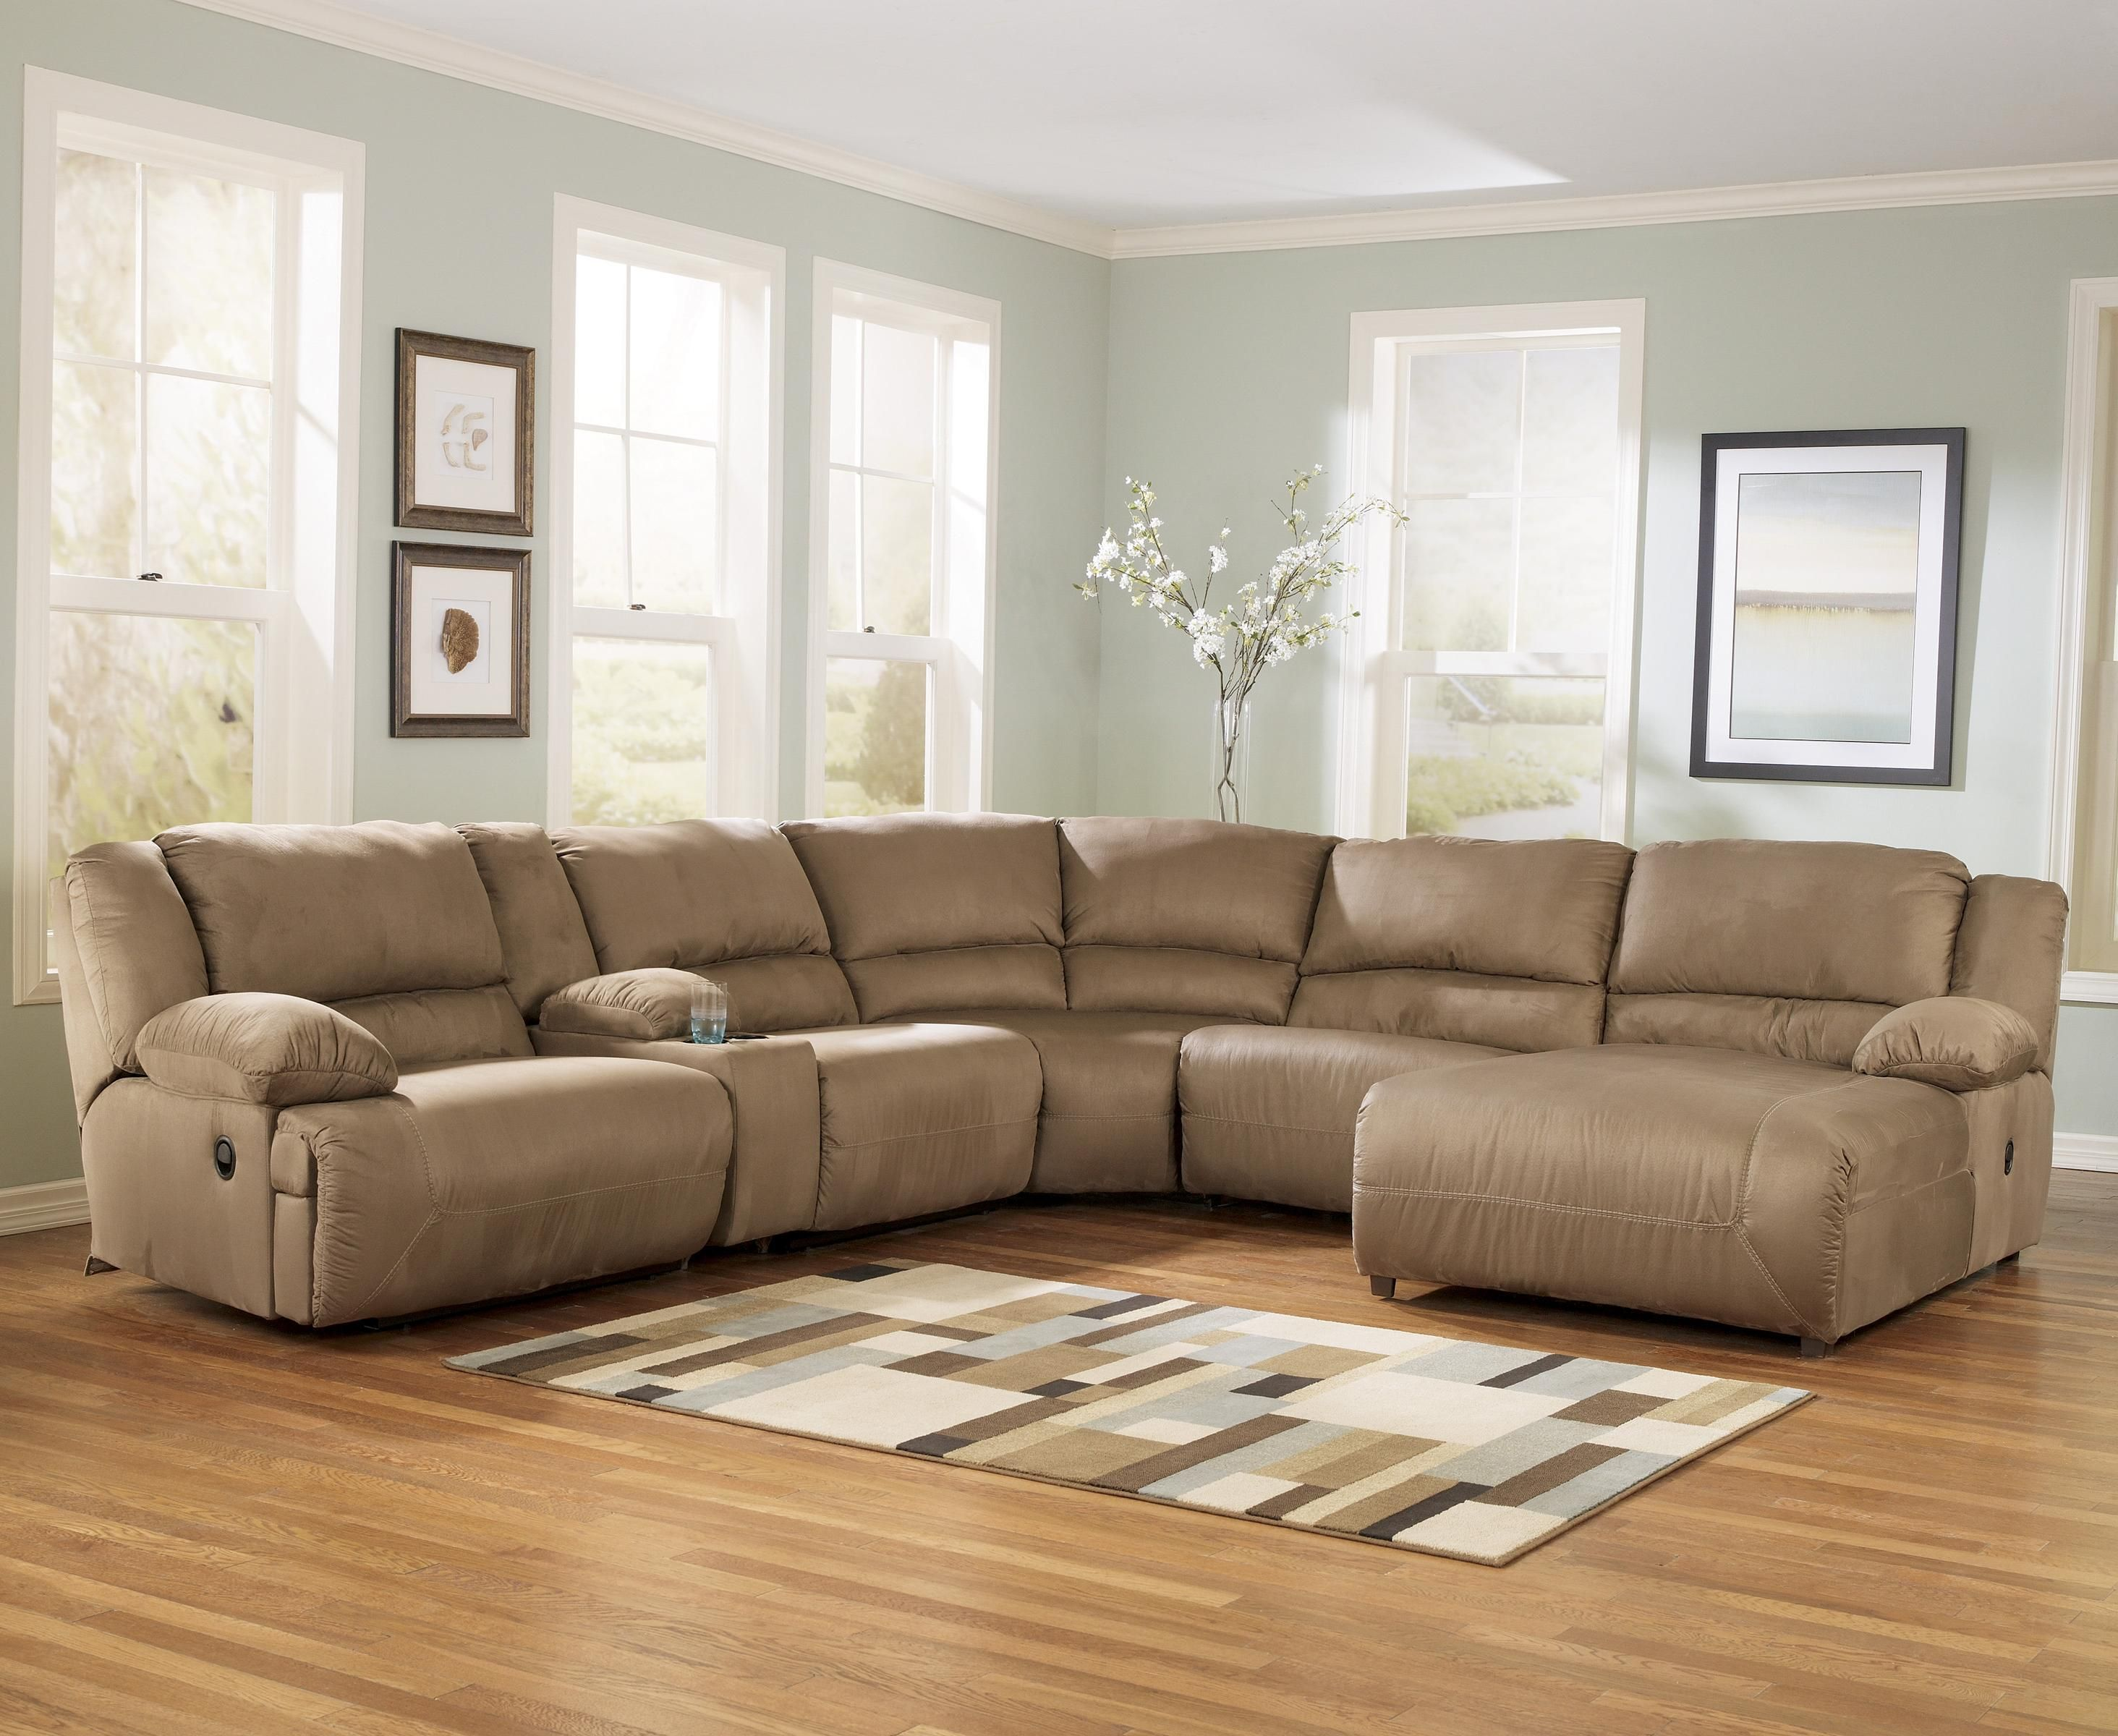 Best Hogan Mocha 6 Piece Motion Sectional With Right Chaise 400 x 300